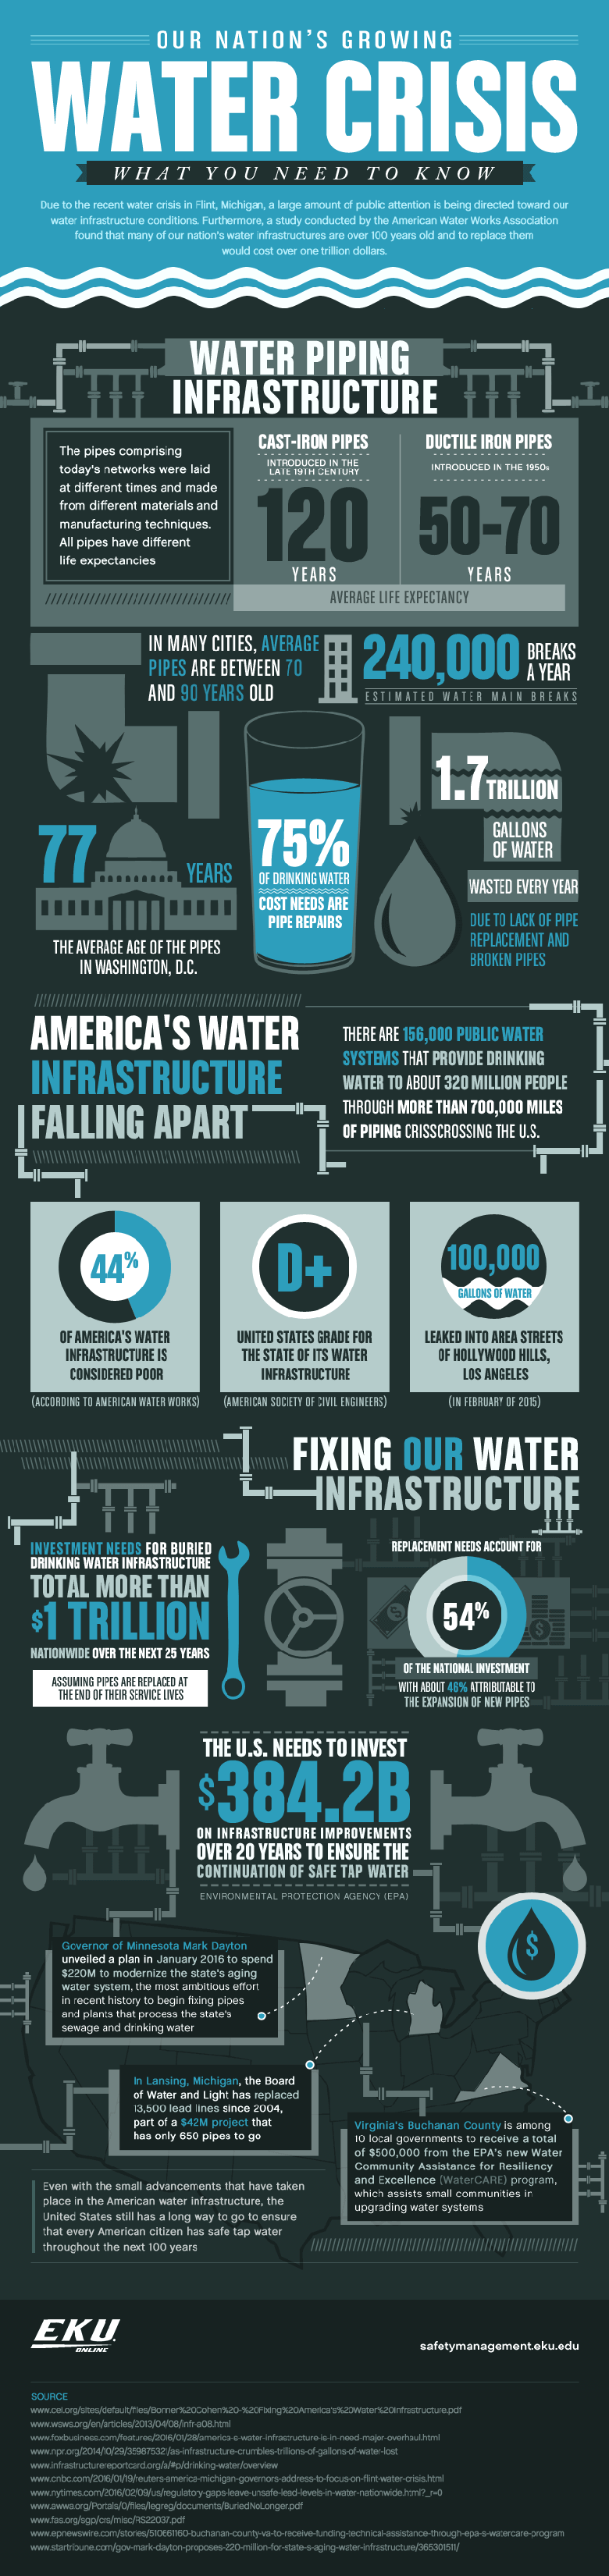 Our Nation's Growing Water Crisis